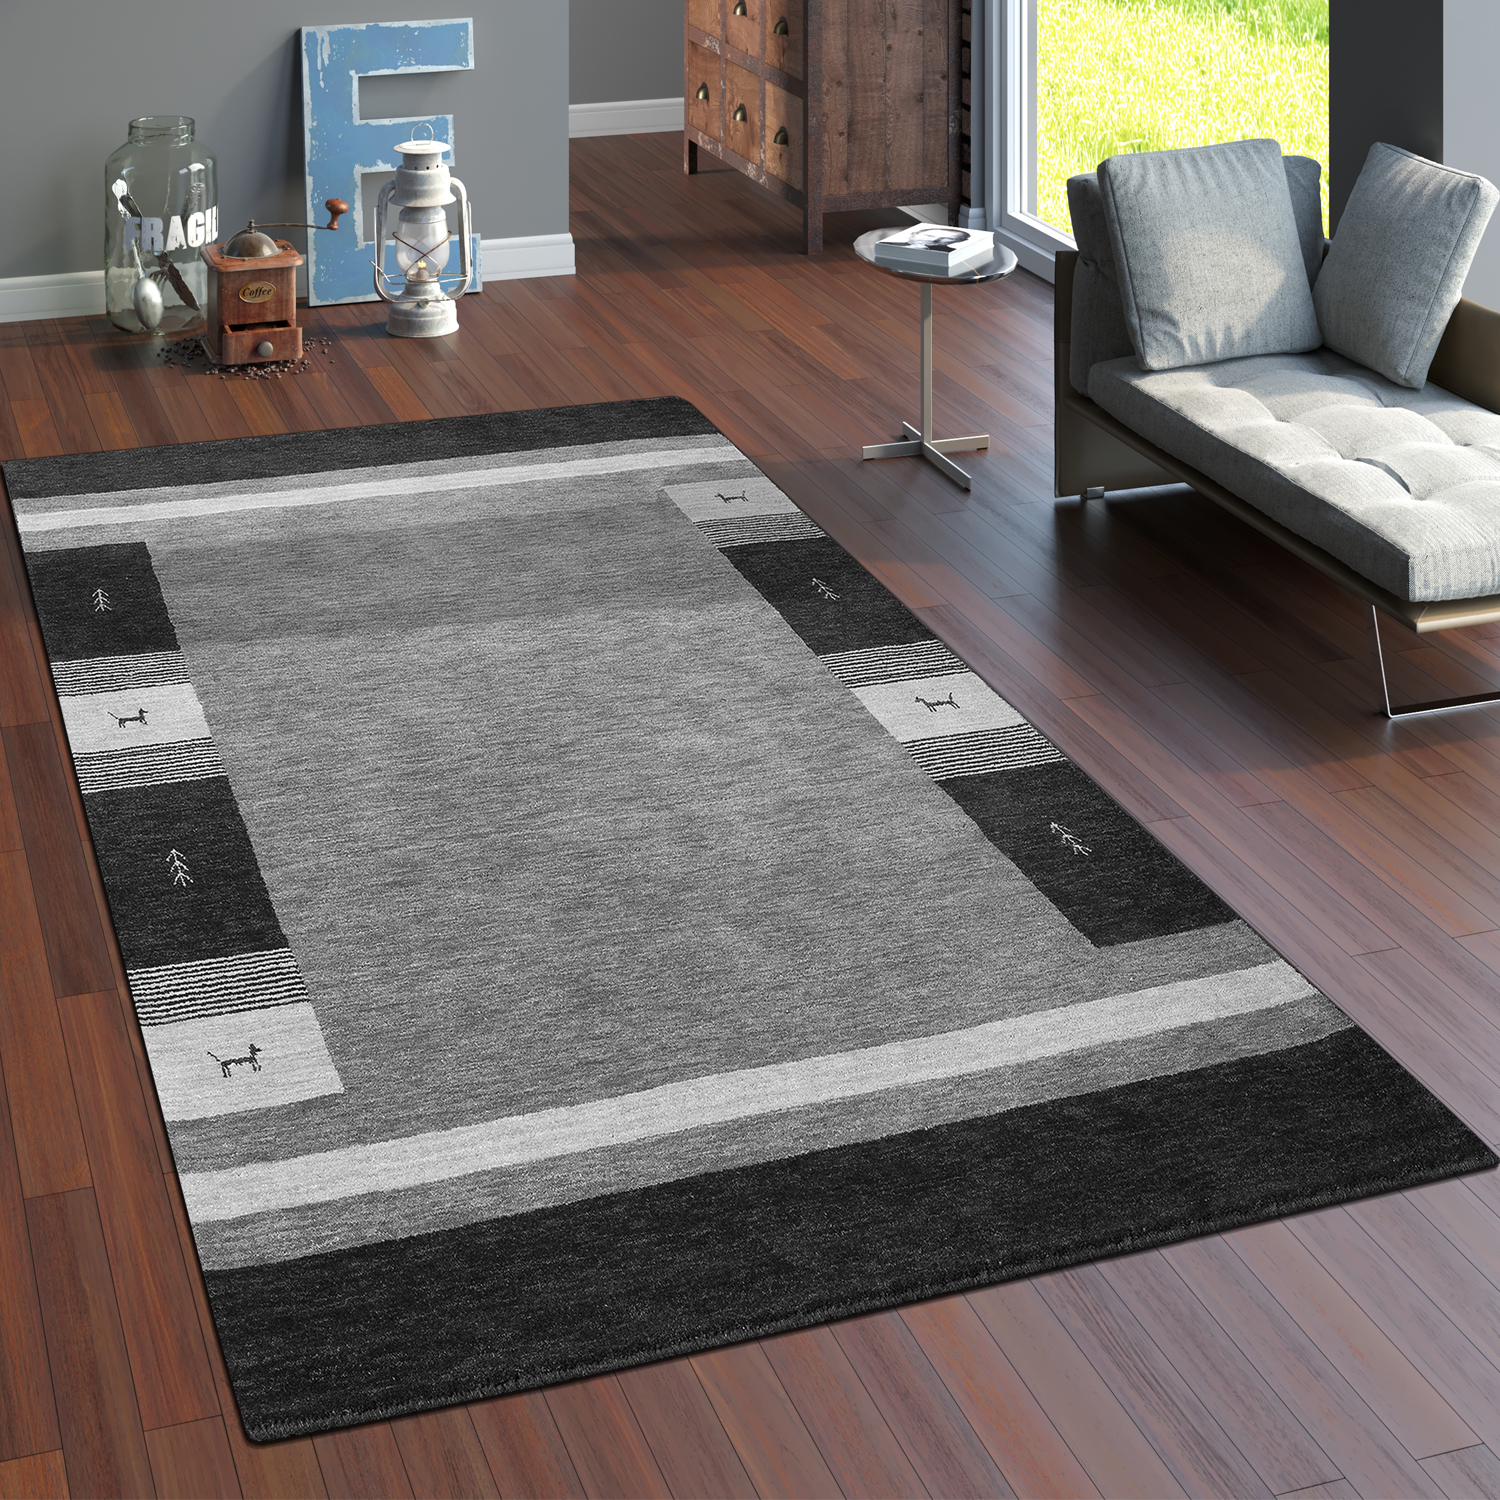 tapis fait main gabbeh haut de gamme 100 laine chin bordure en gris tapis tapis en fibres. Black Bedroom Furniture Sets. Home Design Ideas